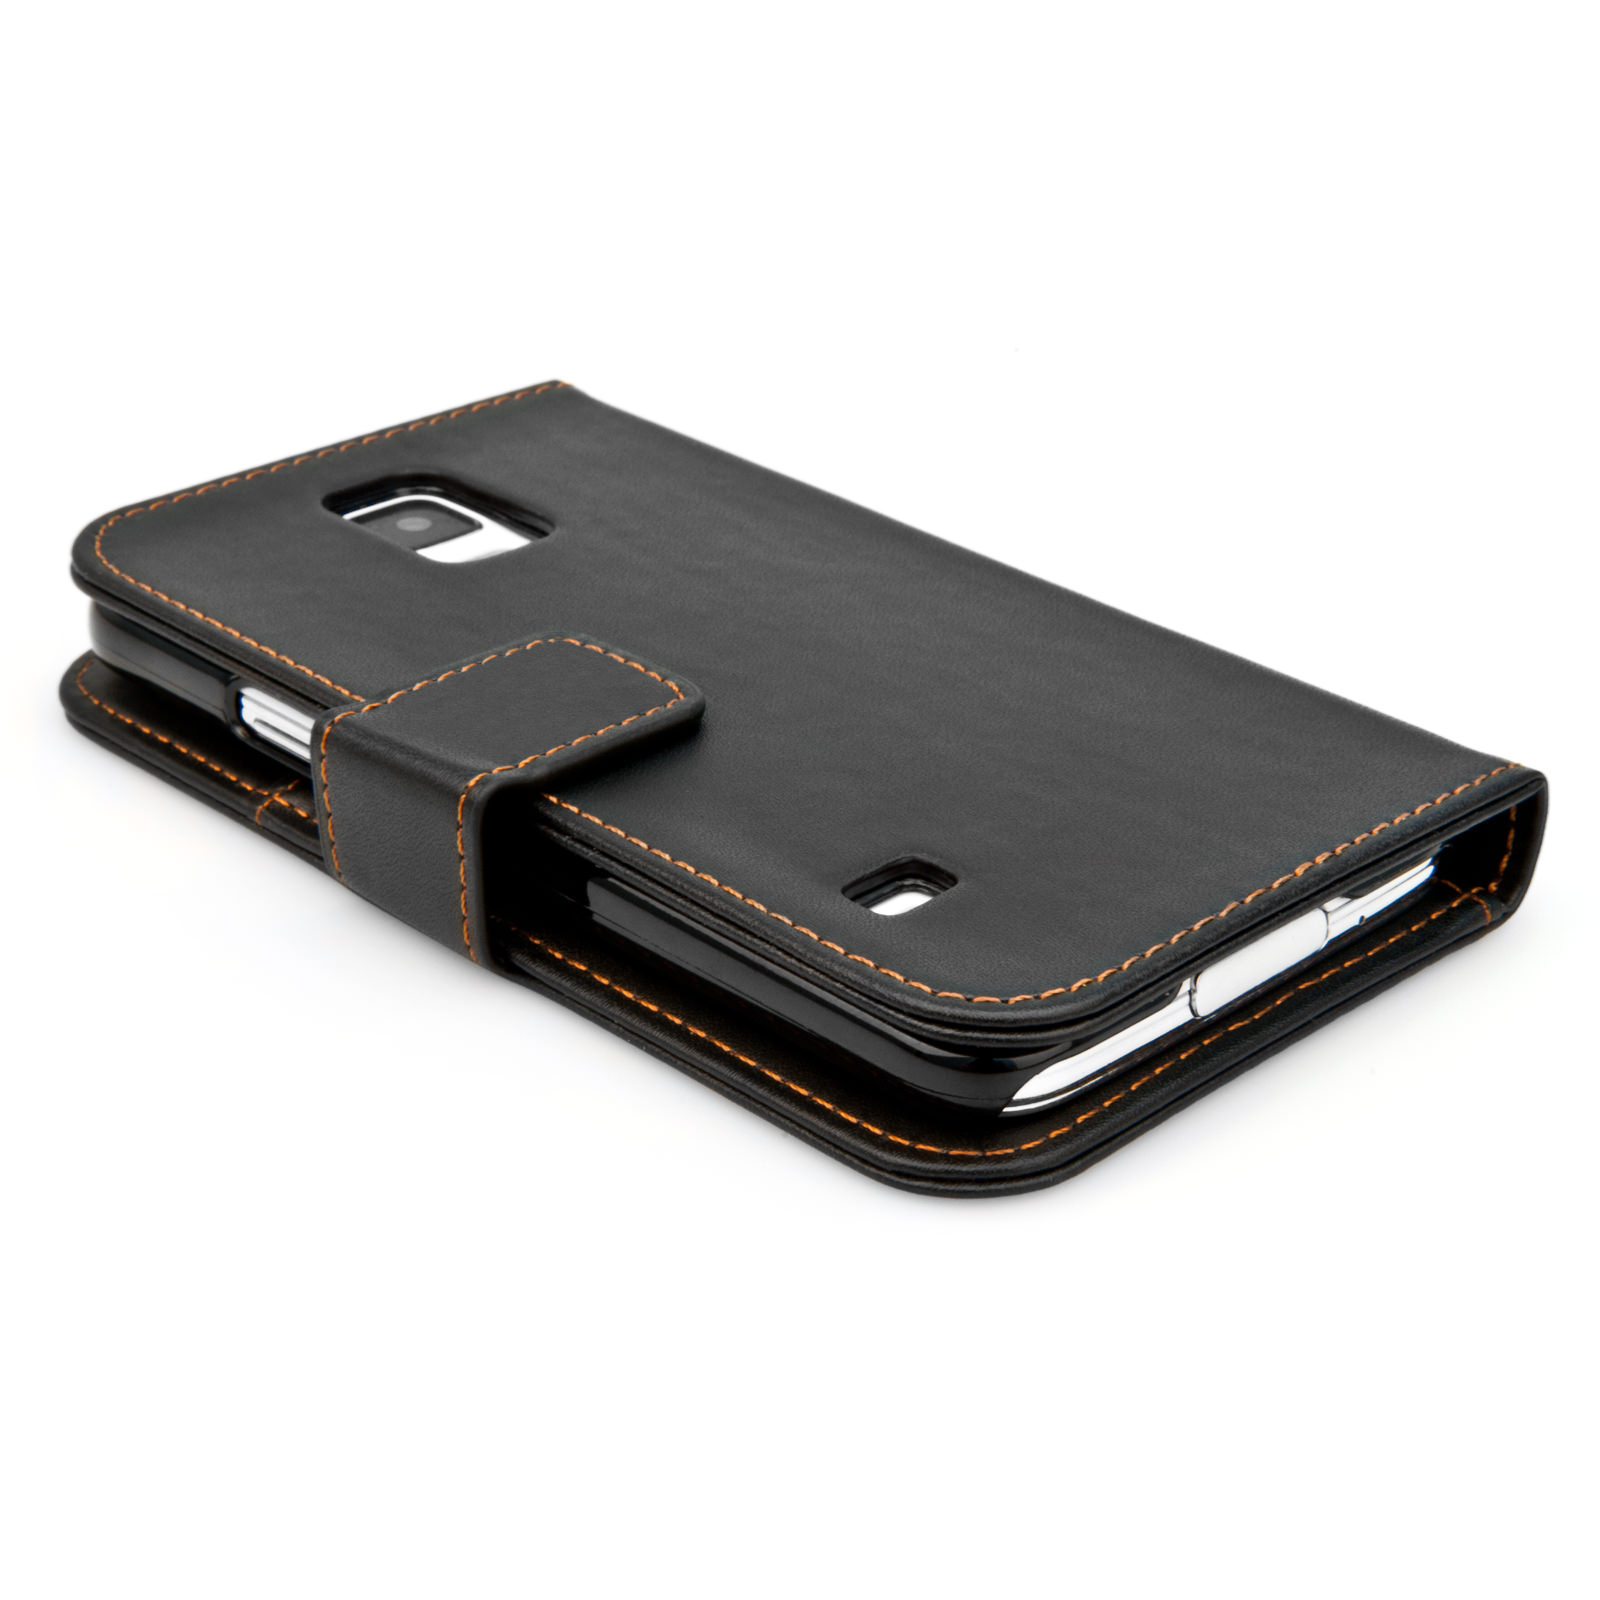 YouSave Samsung Galaxy S5 Leather-Effect Wallet Case - Black